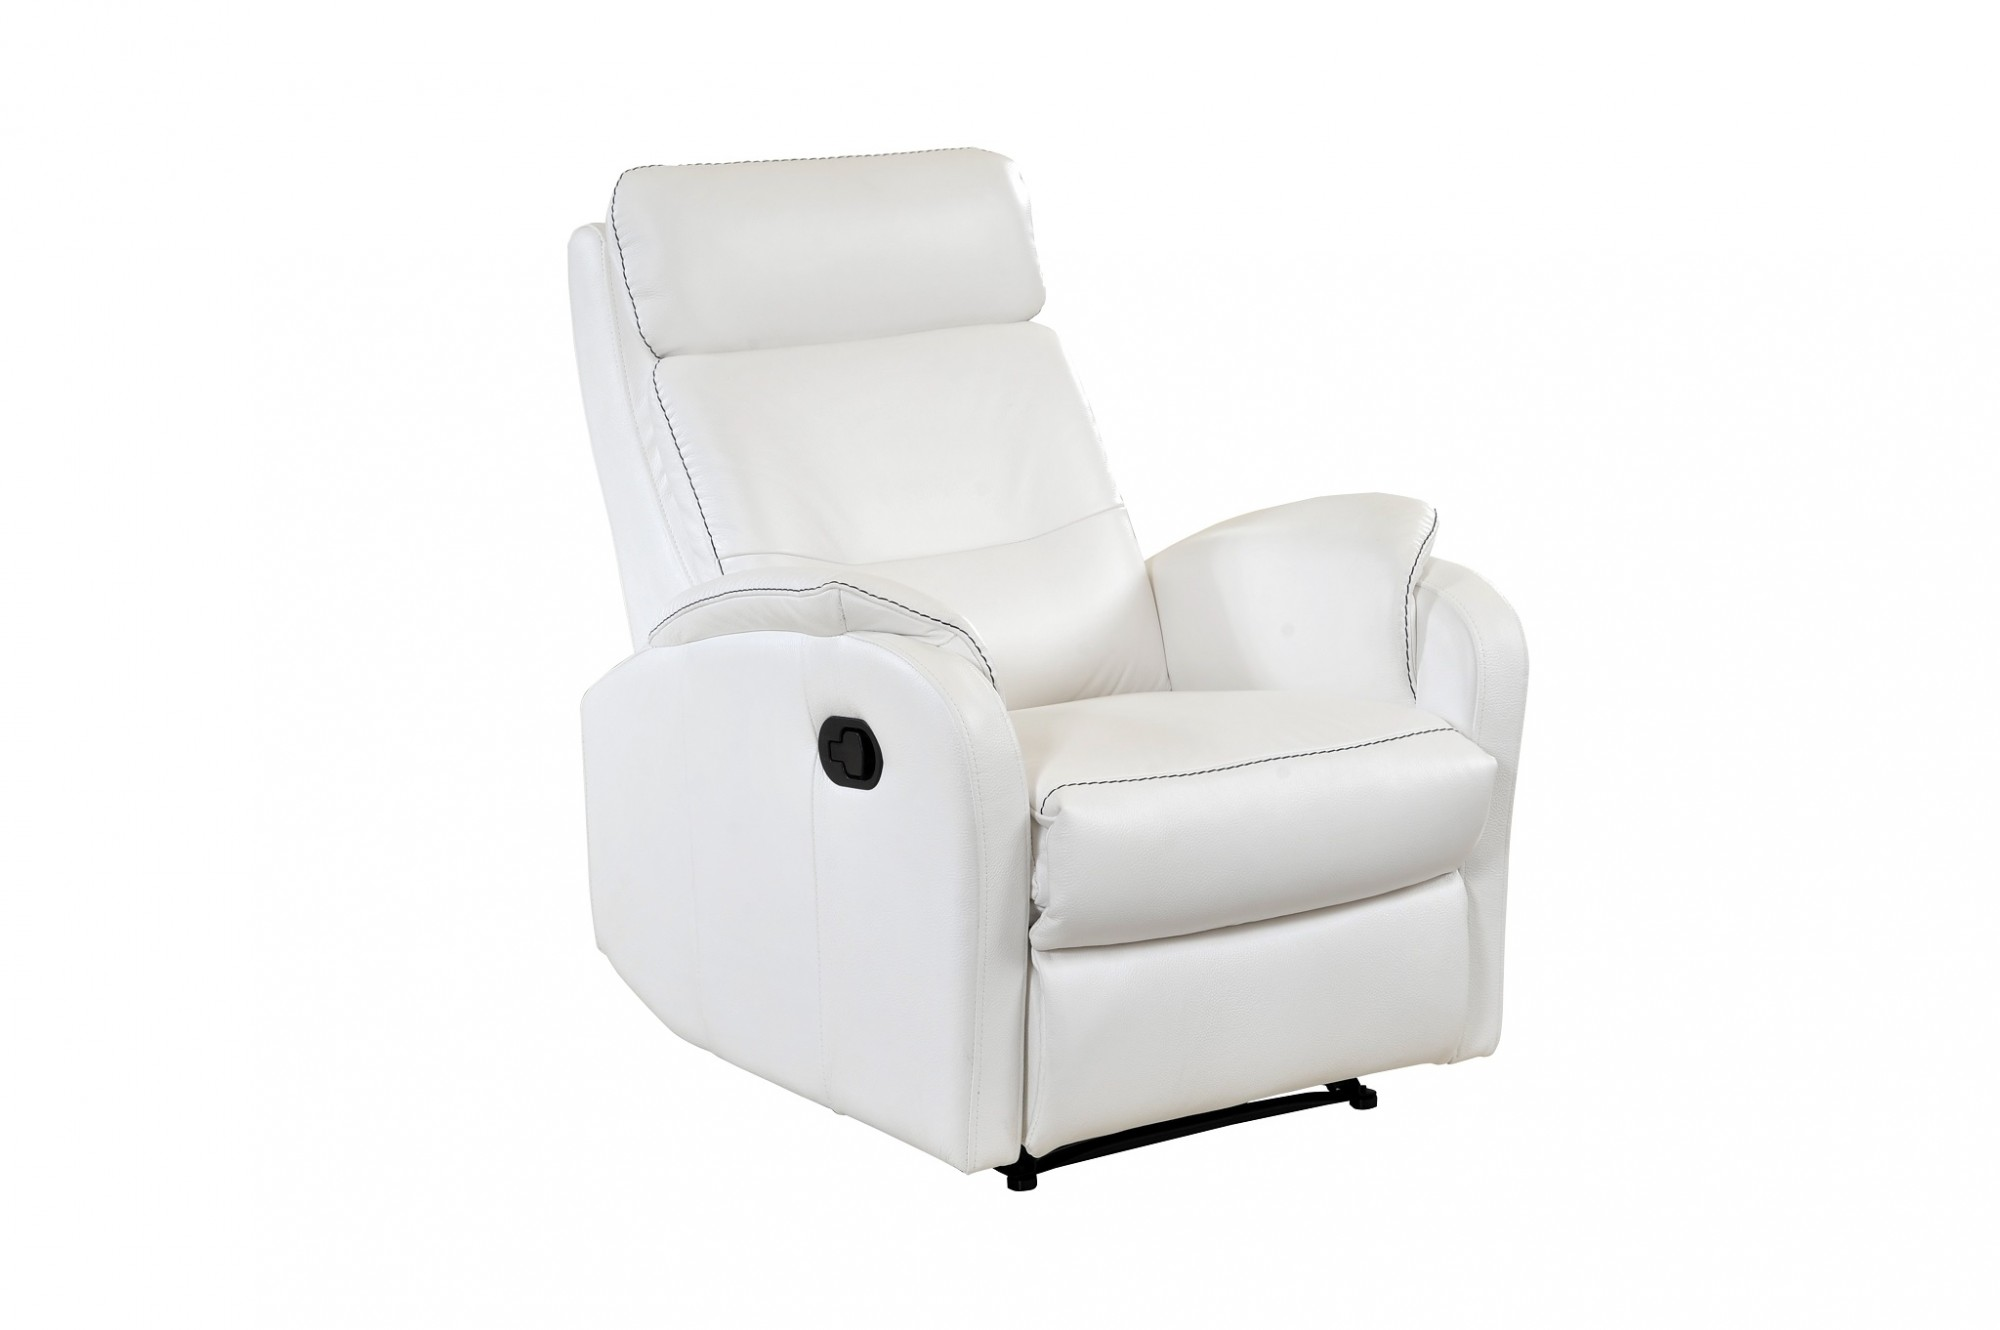 Caro white leather reclining armchair